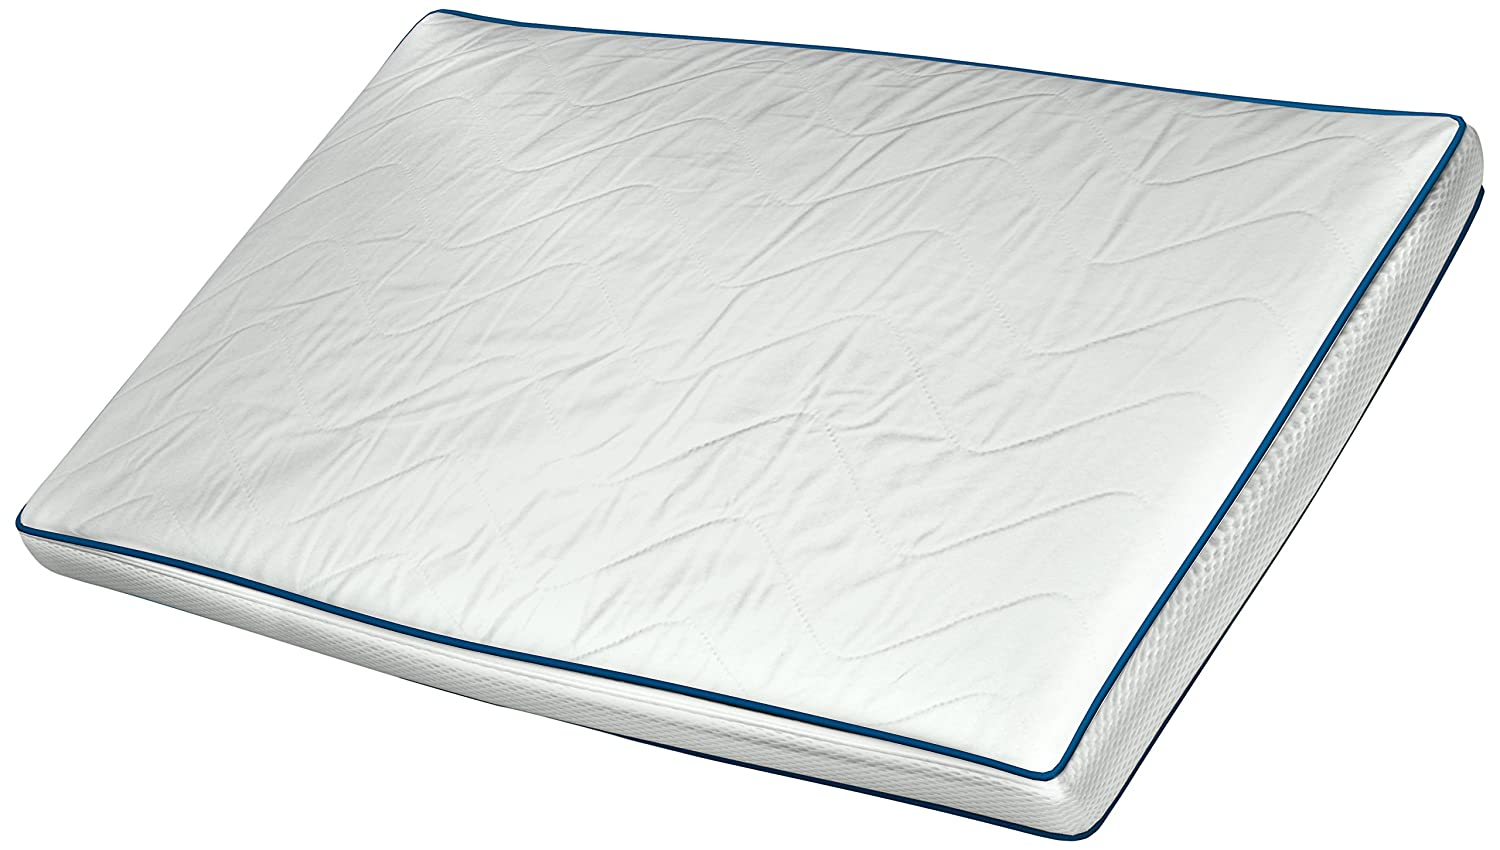 Dr. Breus low profile pillow review